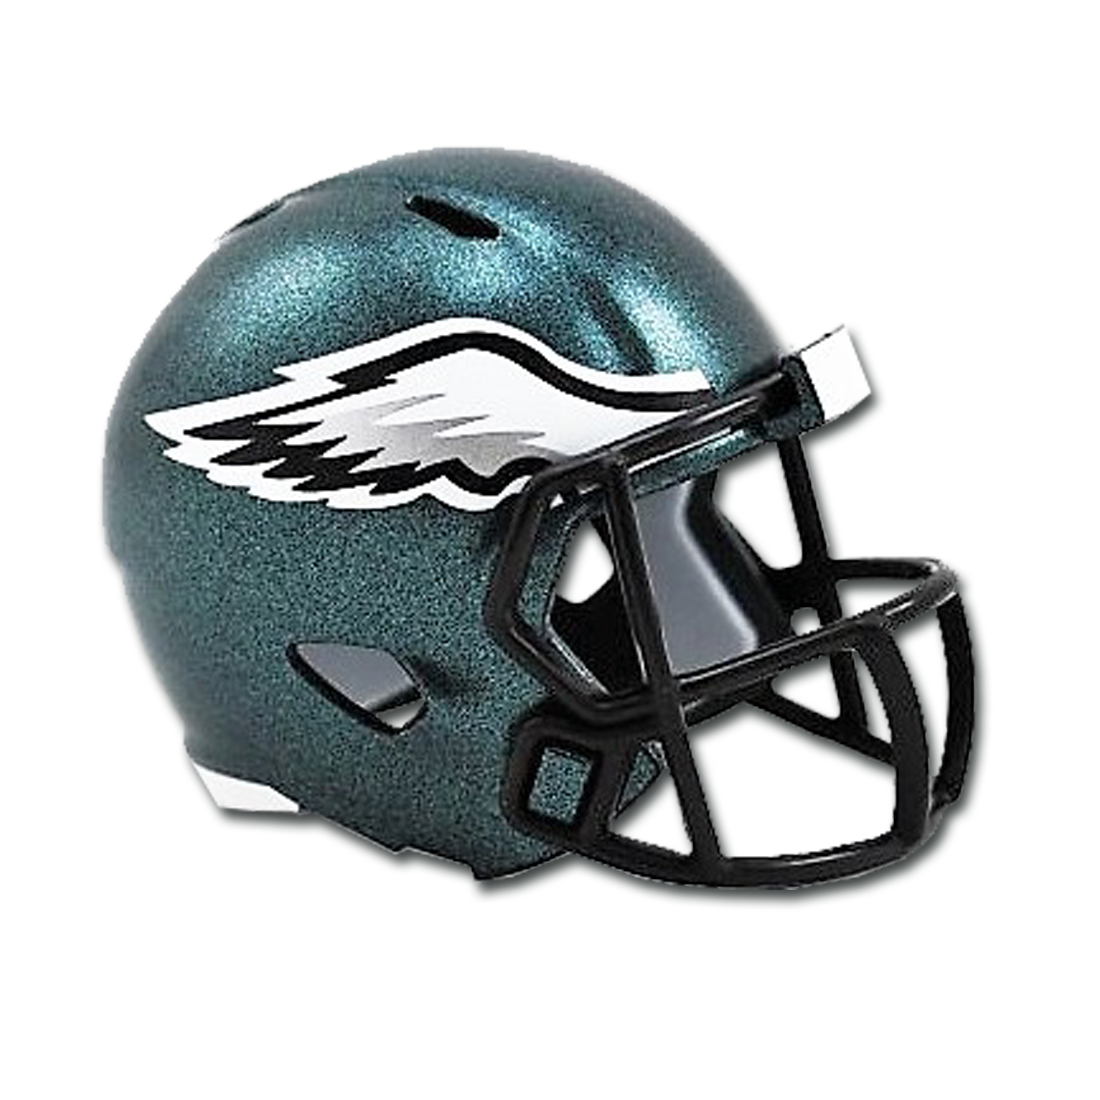 Philadelphia Eagles Helmet Png (108+ images in Collection) Page 1.